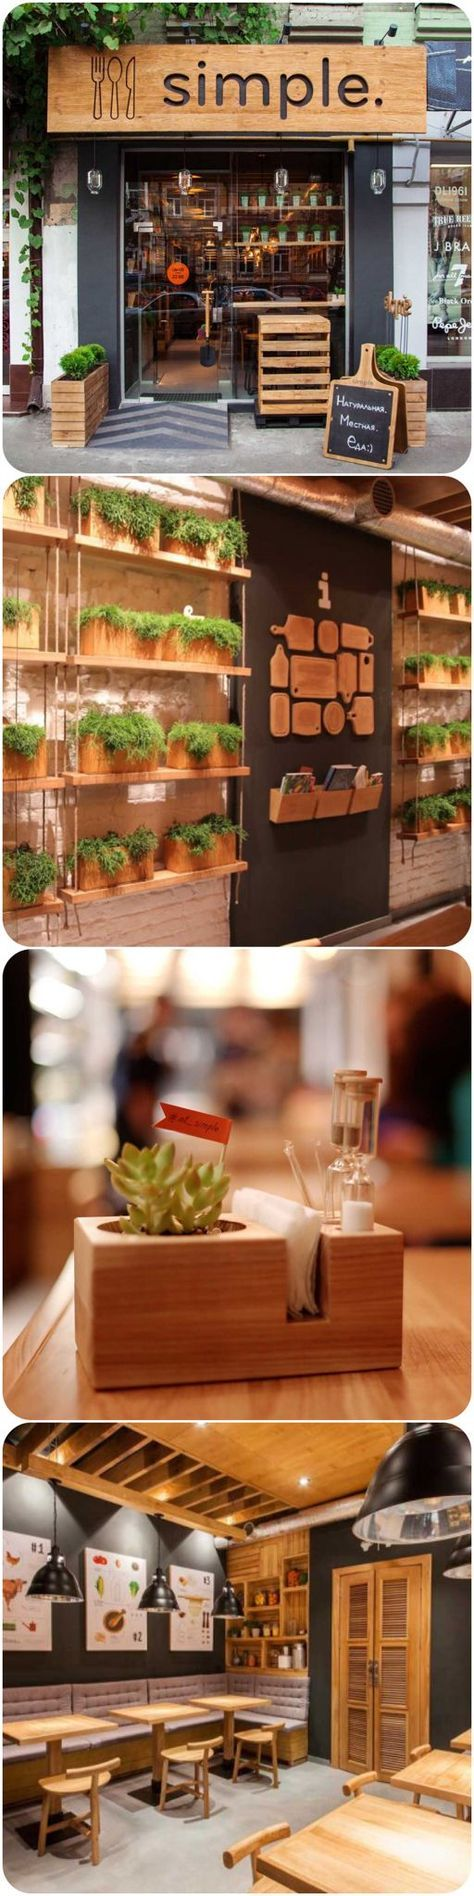 best 20+ cafe de la luz ideas on pinterest | mesa de bistro